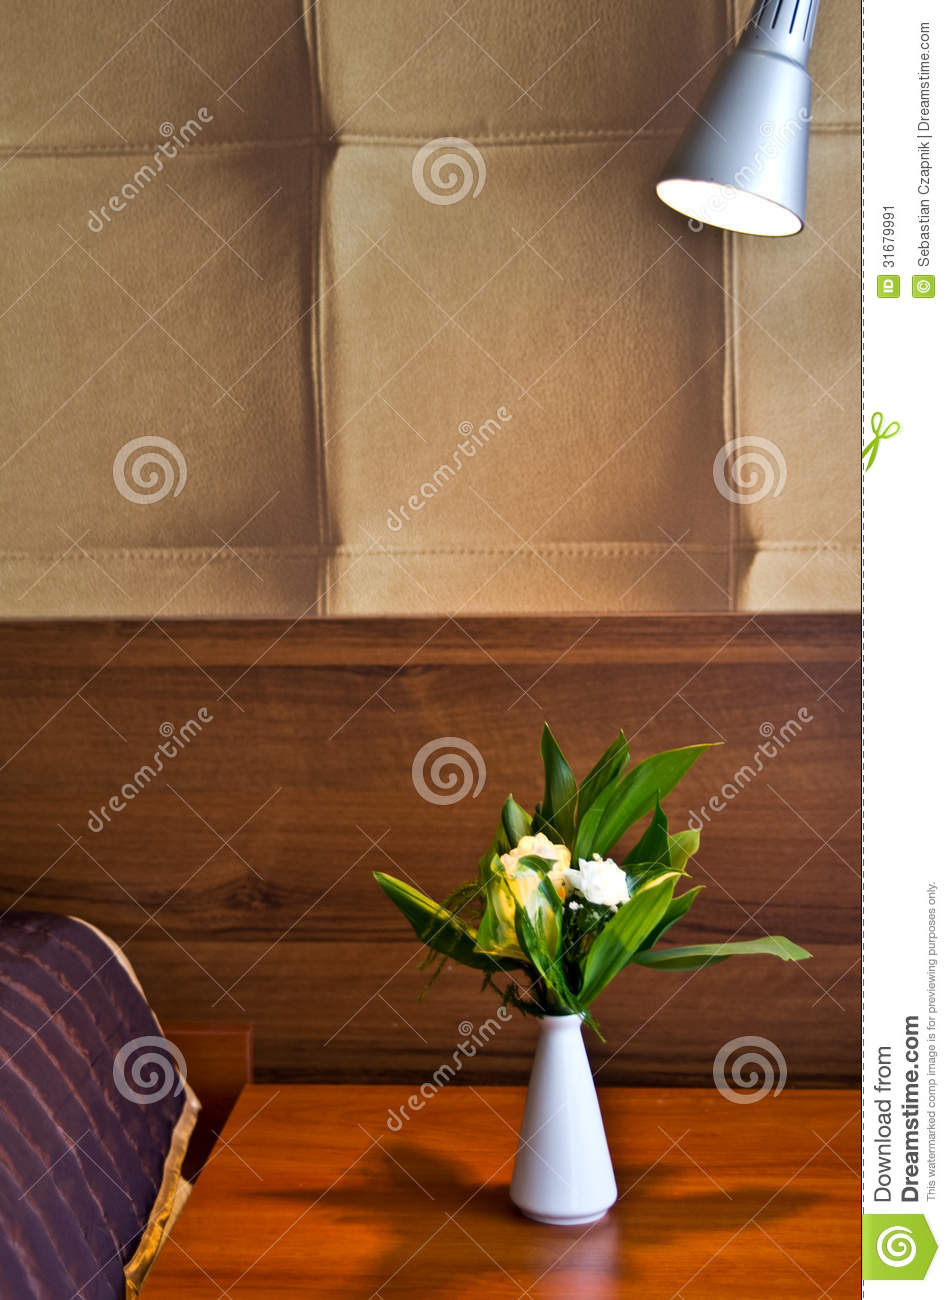 Bedside decoration stock image image 31679991 for Bedside decoration